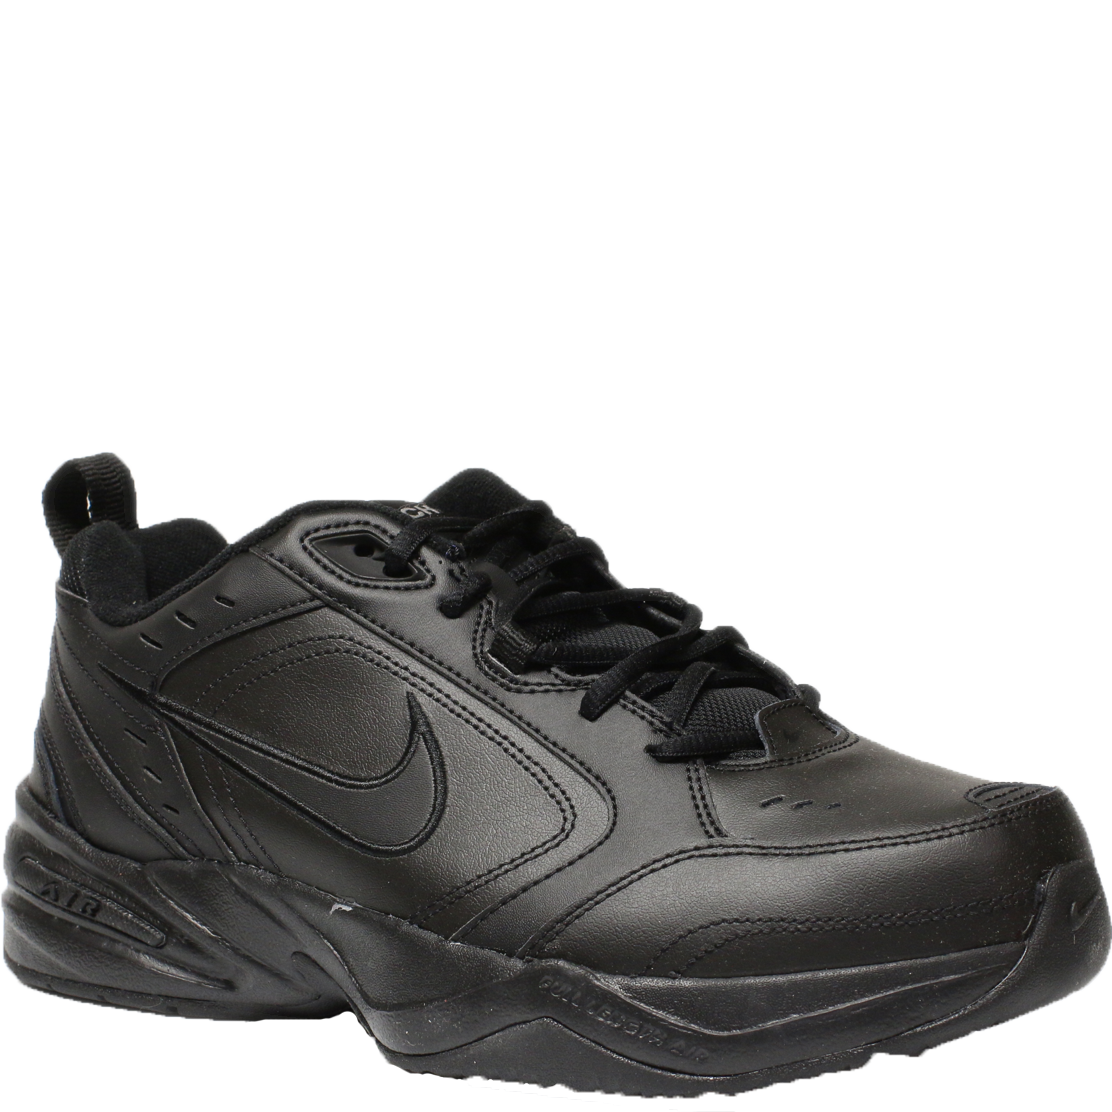 172aba6f4fe7a9 Nike AIR MONARCH IV 416355-001 Black